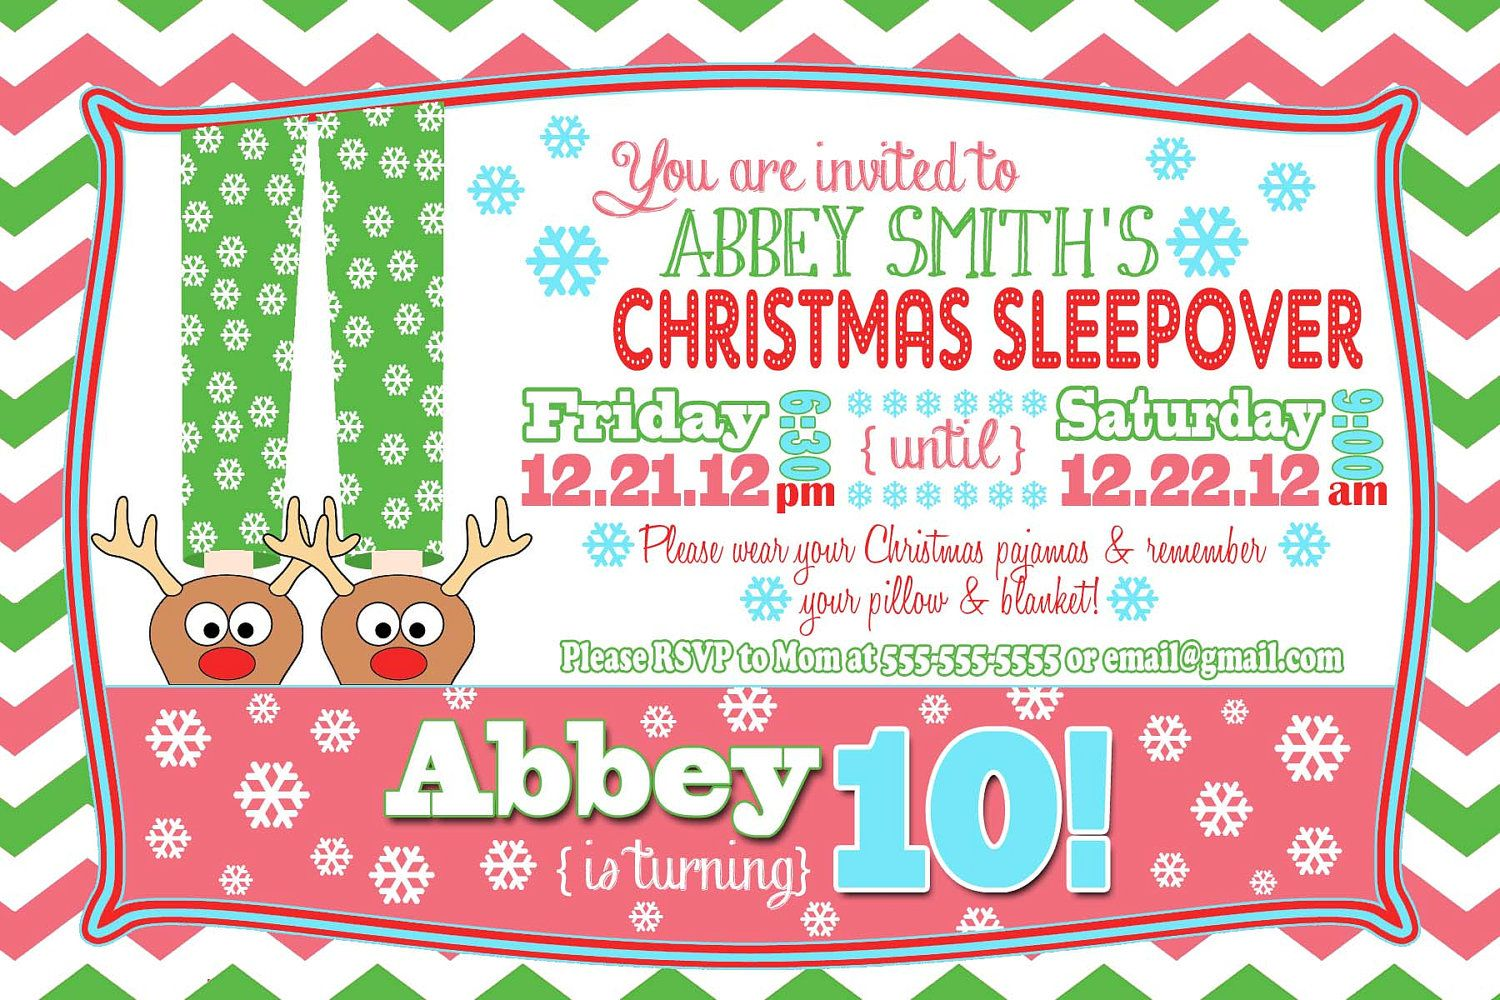 Custom Christmas Party Sleepover Invitation | Sleepover ...